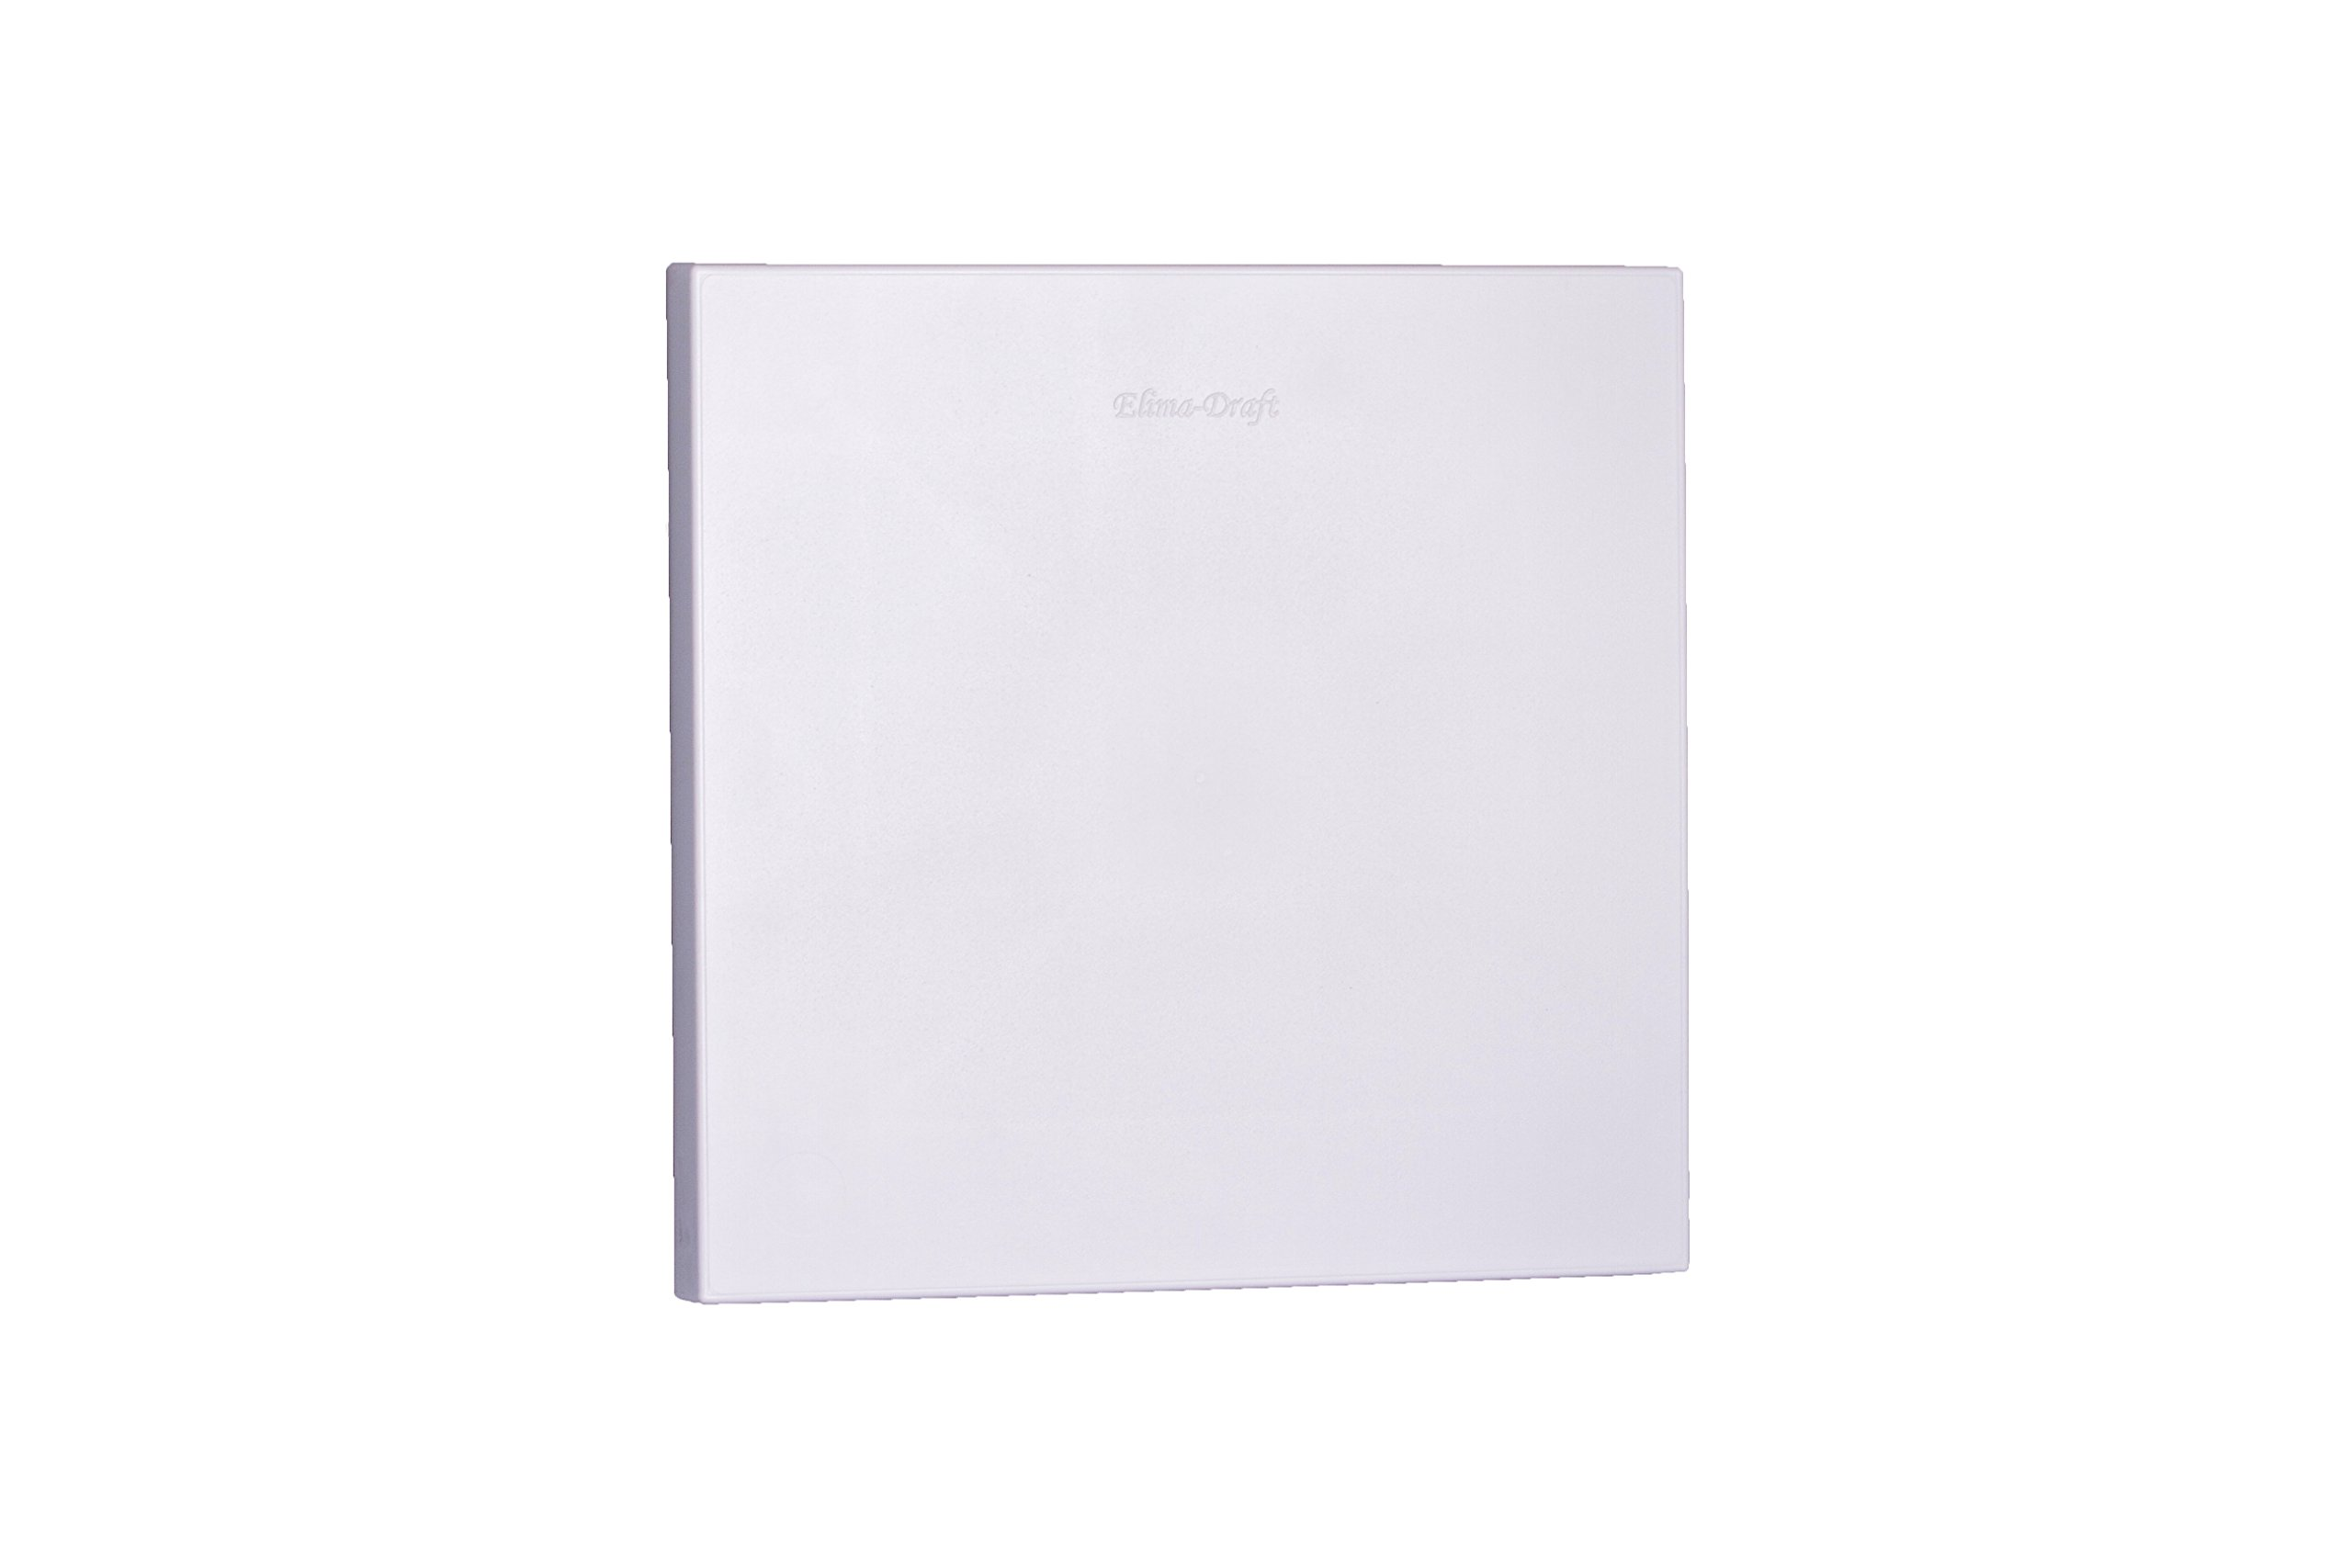 Elima-Draft 11''x11'' Insulated Magnetic HVAC Vent Cover For ALUMINUM Vents